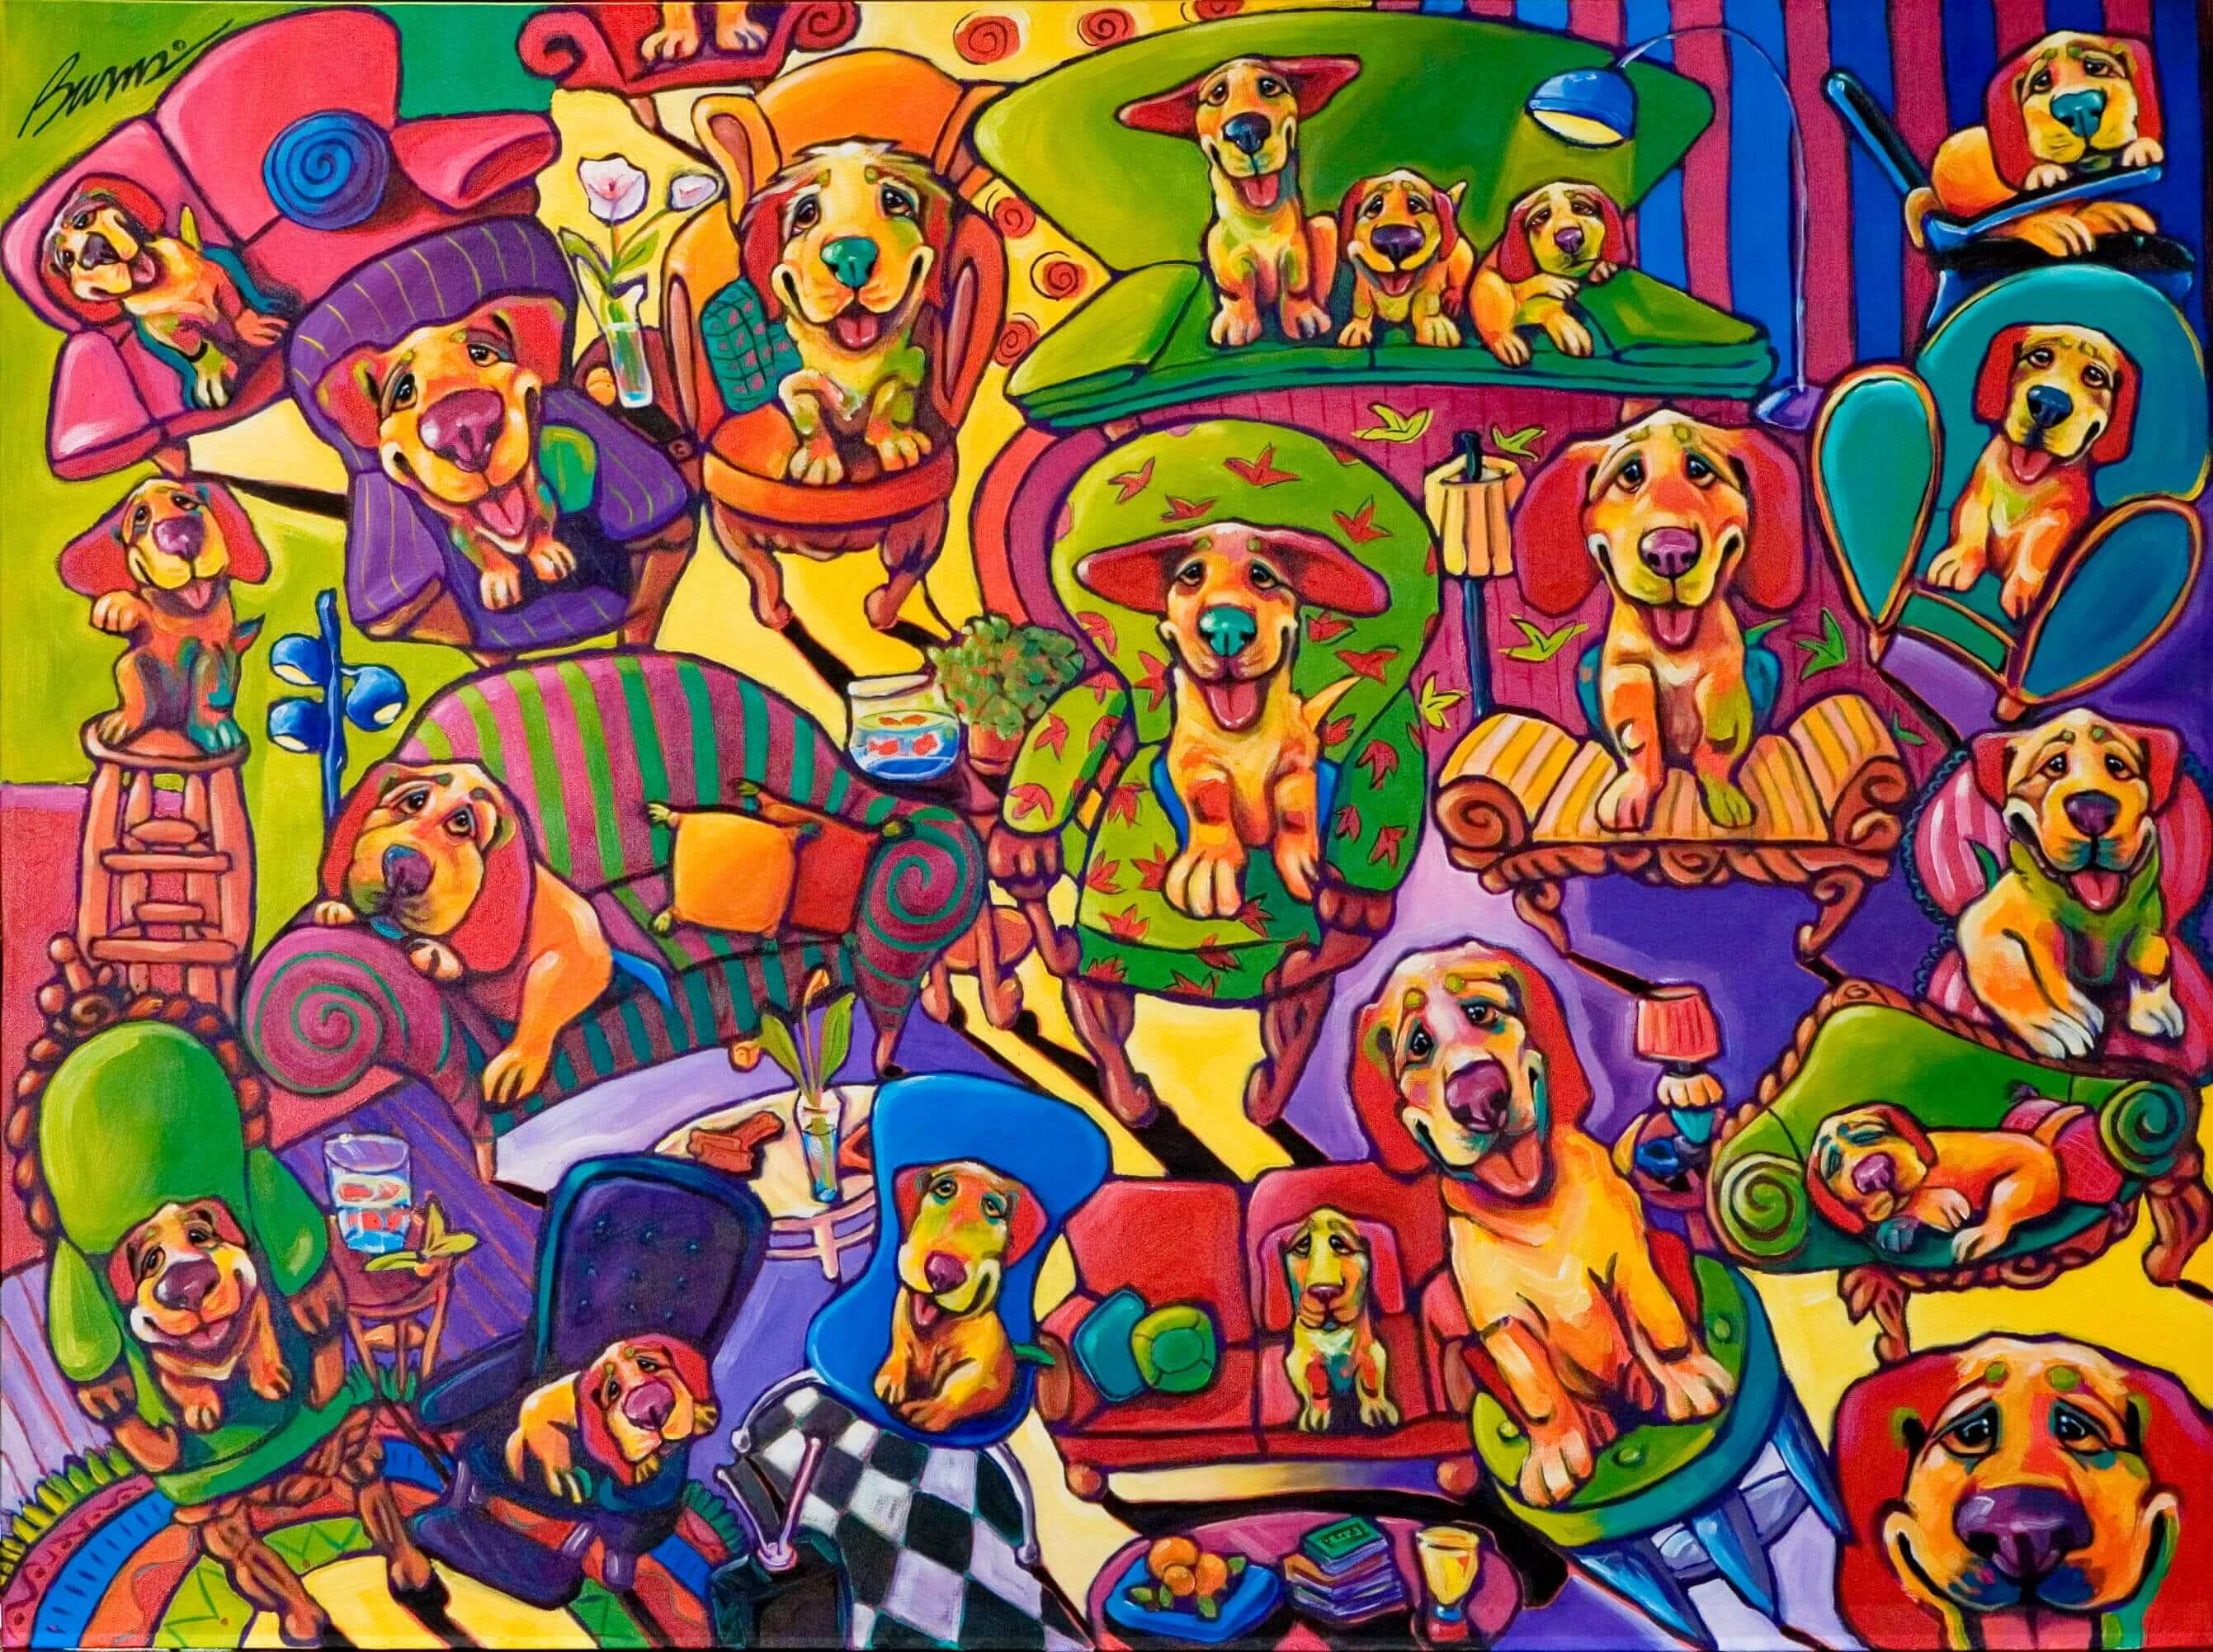 Couches, Chairs, and Canines by Ron Burns